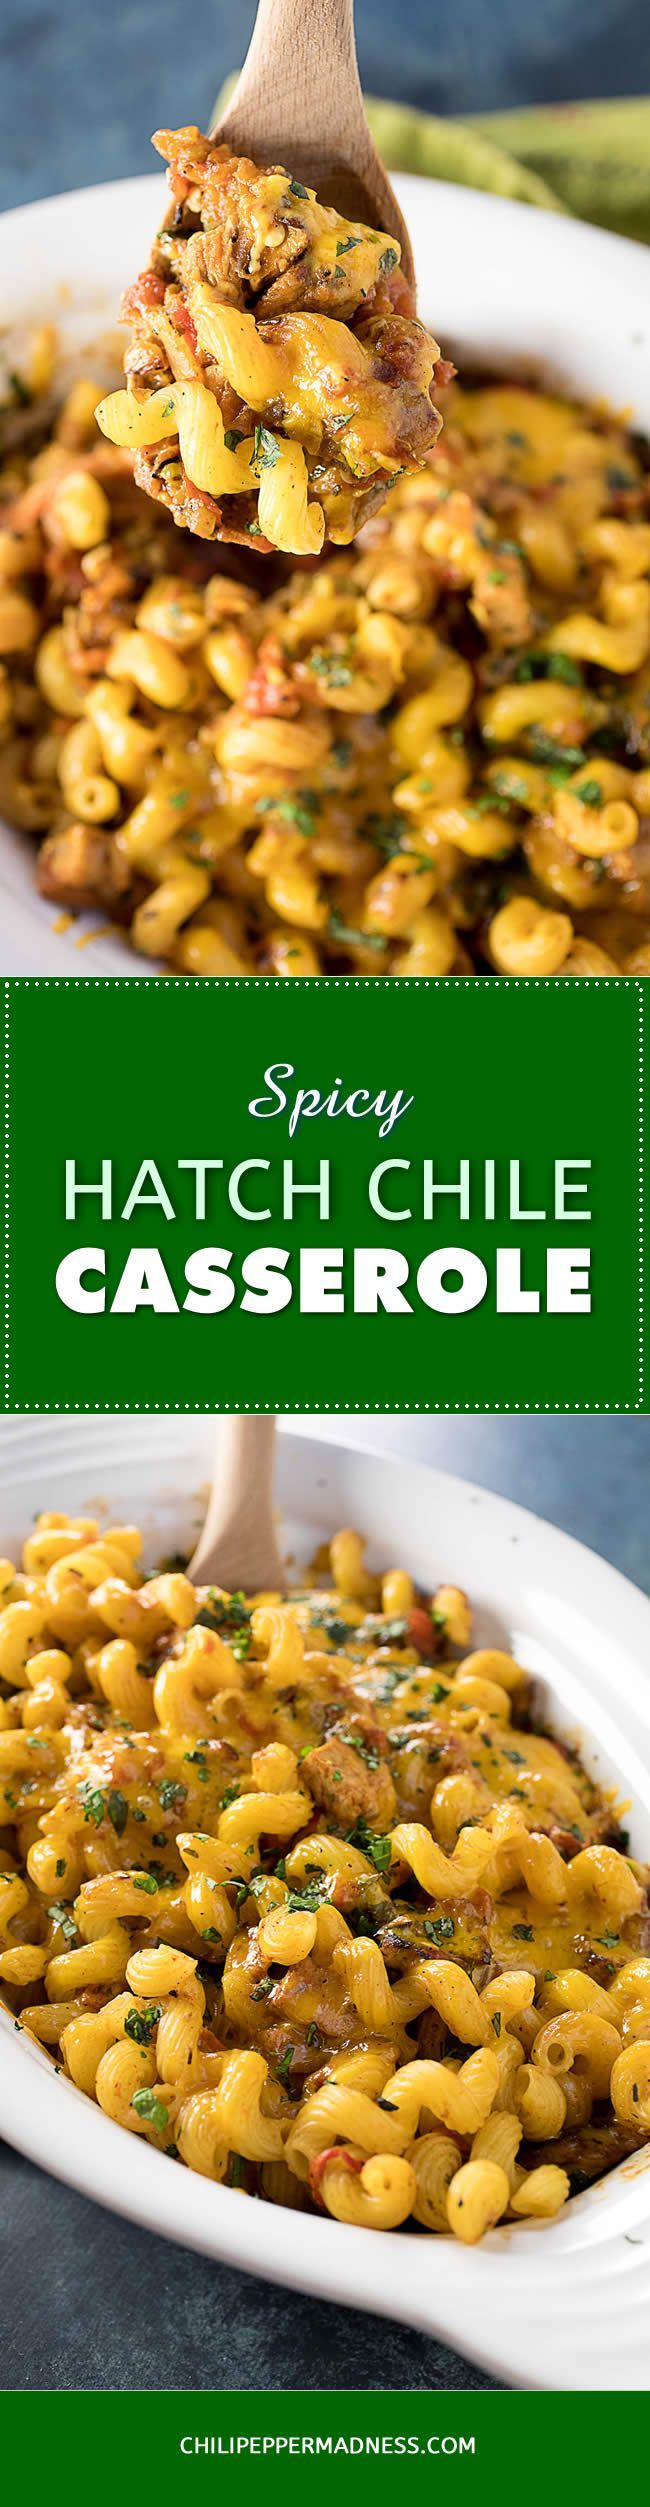 Spicy Pork-Hatch Chili Casserole –  This one-pan easy-bake casserole recipe is loaded with the savory flavors of roasted Hatch chile peppers, tomatoes, pork loin, pasta noodles and cheddar cheese. It's a perfect weeknight meal. #hatch #chile #recipe #pasta #casserole